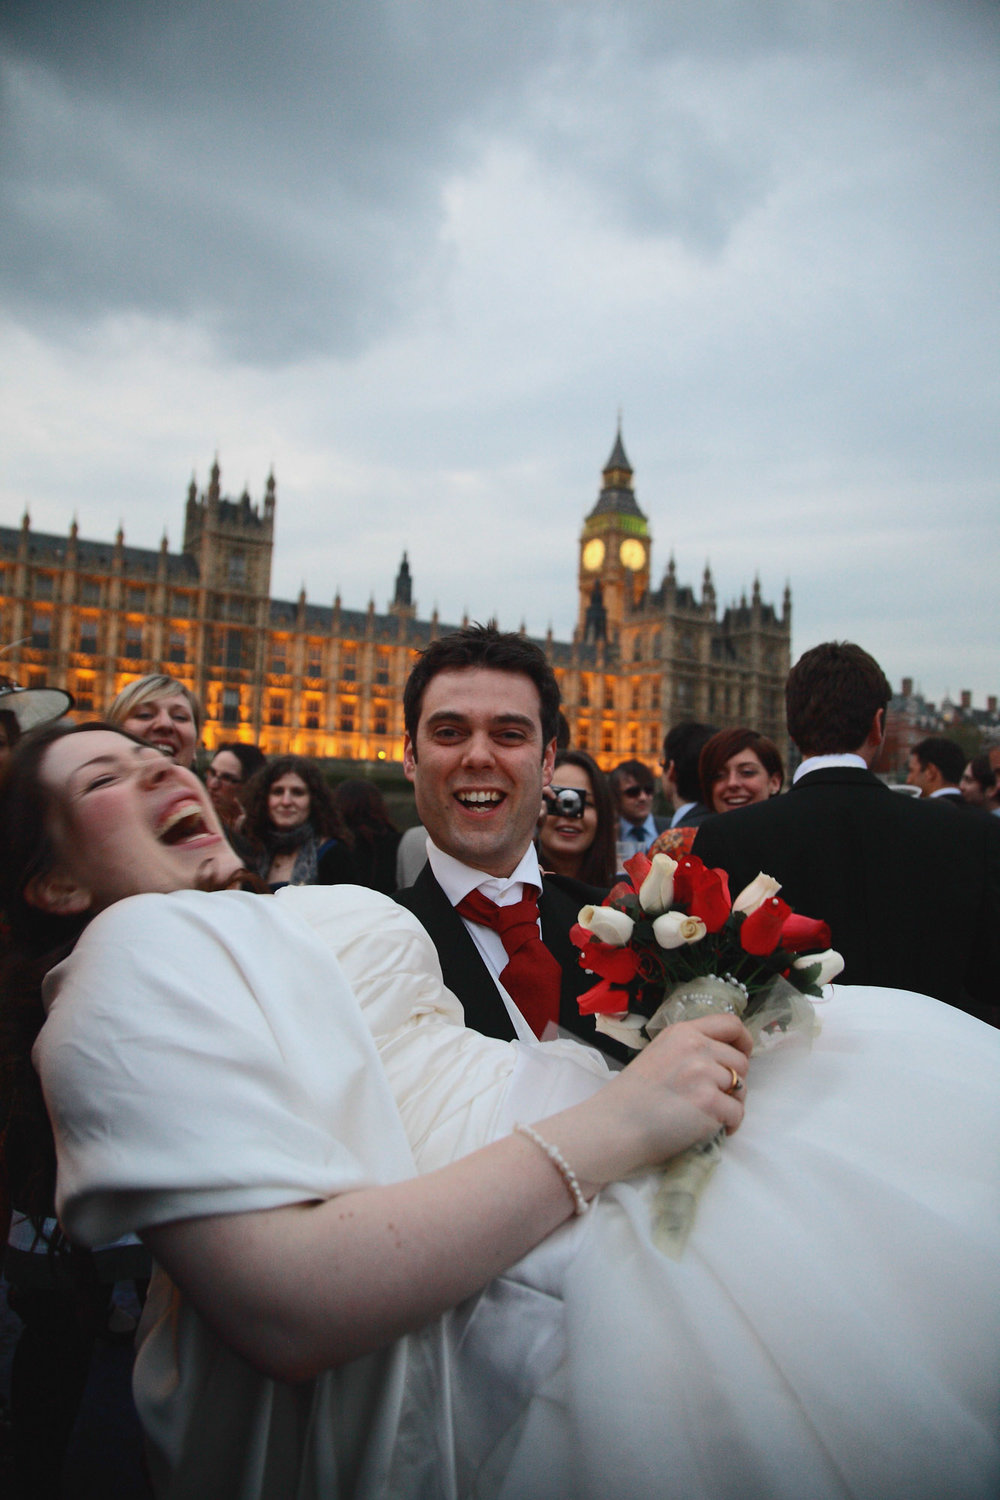 weddings-couples-love-photographer-oxford-london-jonathan-self-photography-98.jpg